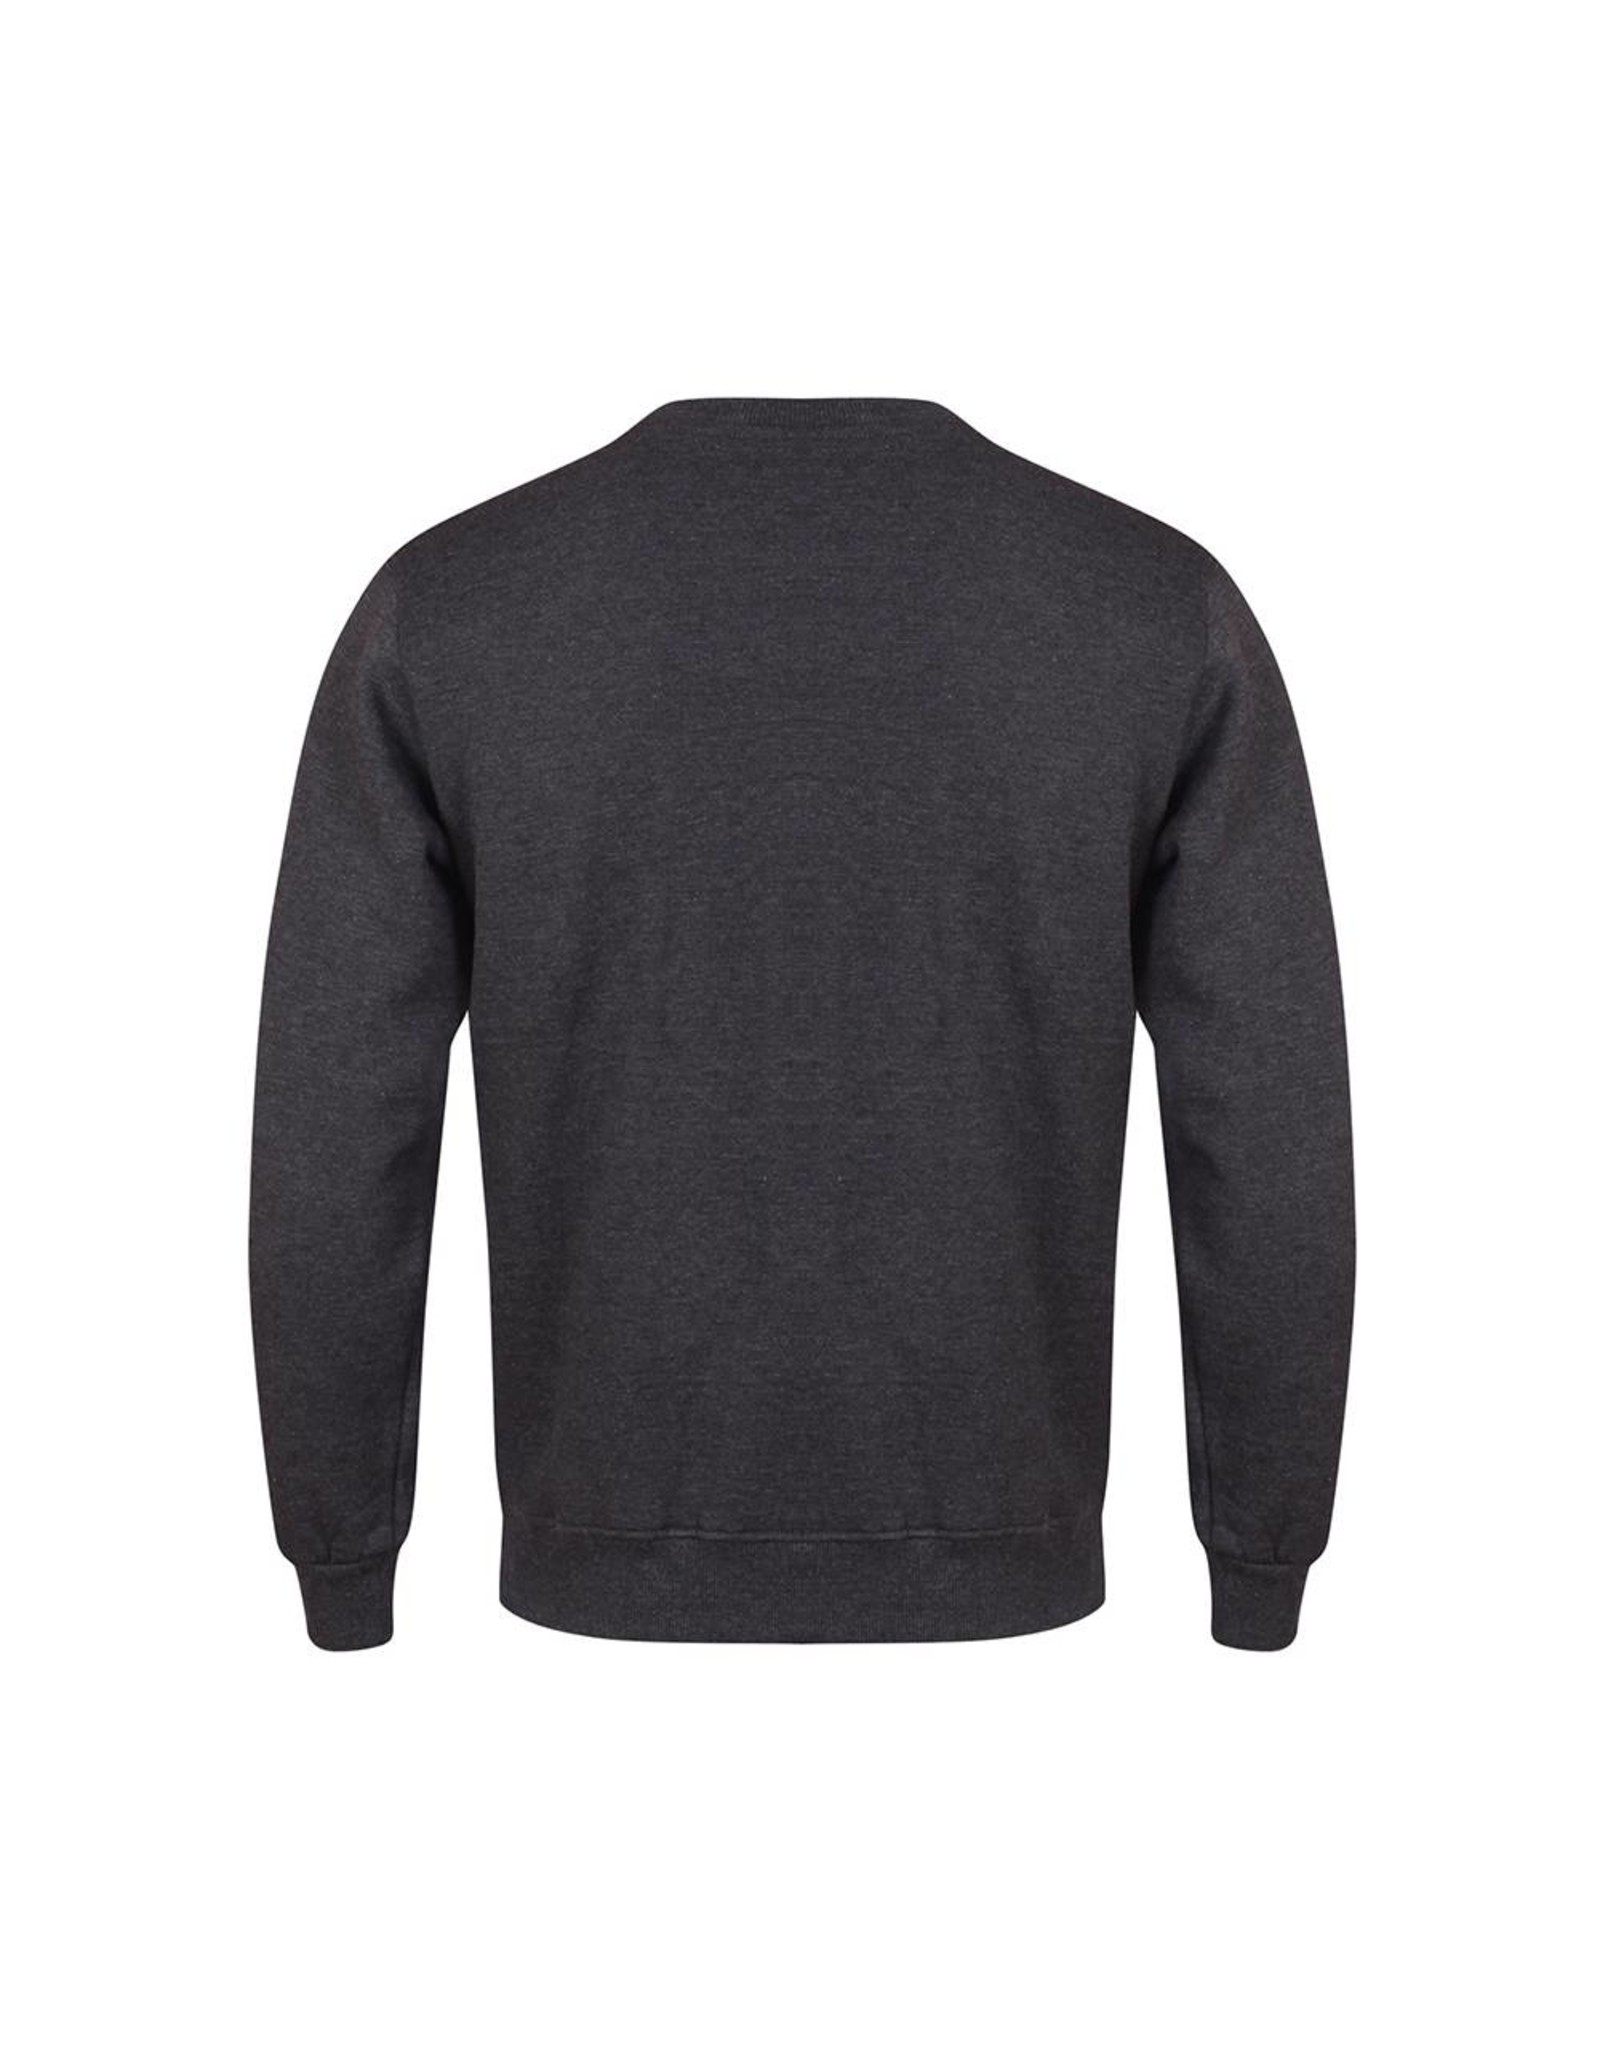 Gold's Gym Muscle Joe Crew Neck Sweater - Charcoal Marl